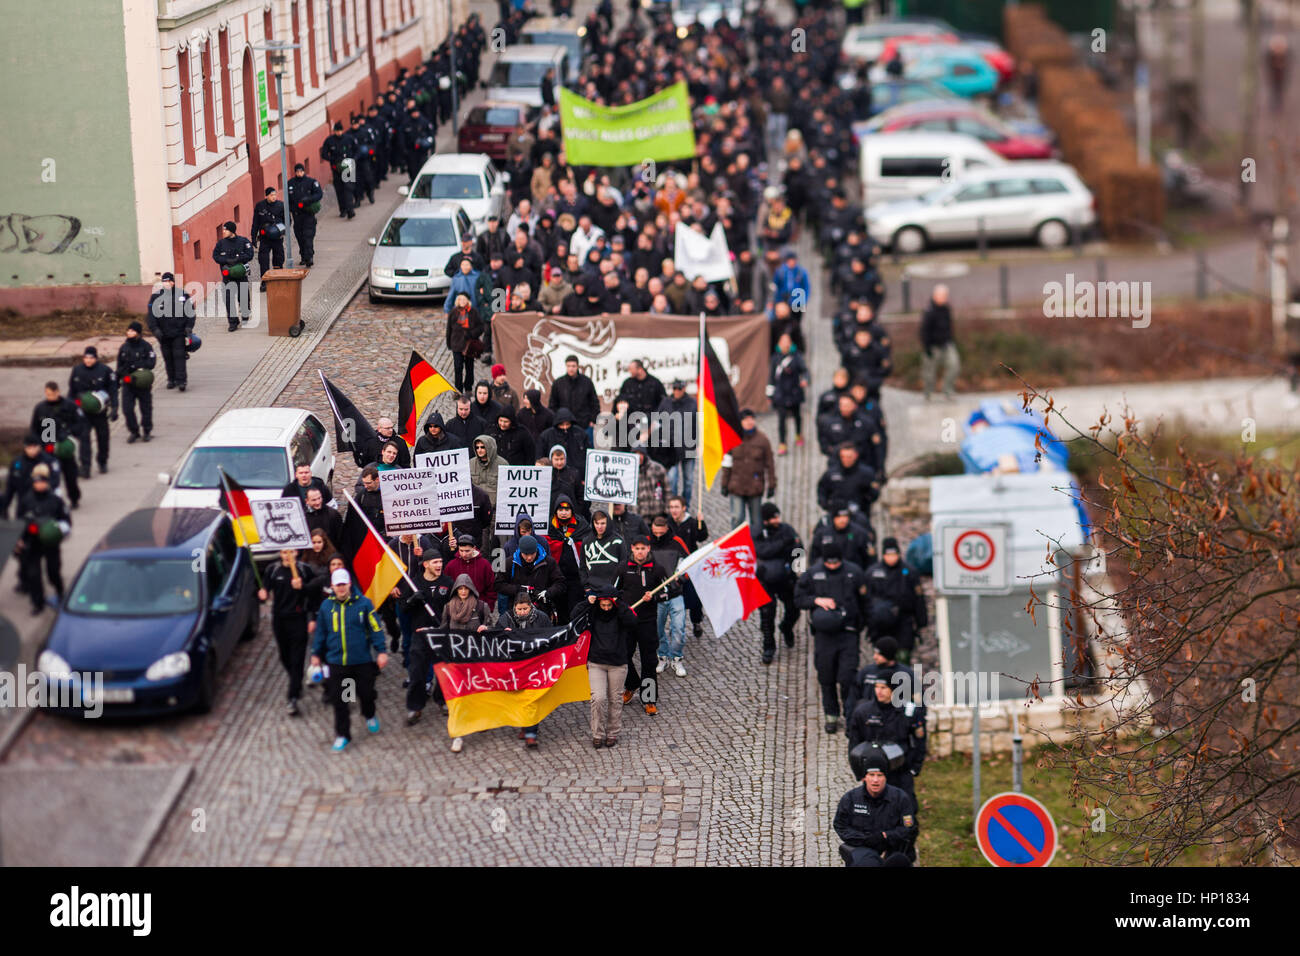 FRANKFURT (ODER), GERMANY - 17 January 2015: Right-wing demonstrators march against immigration and refugees, 15 - Stock Image